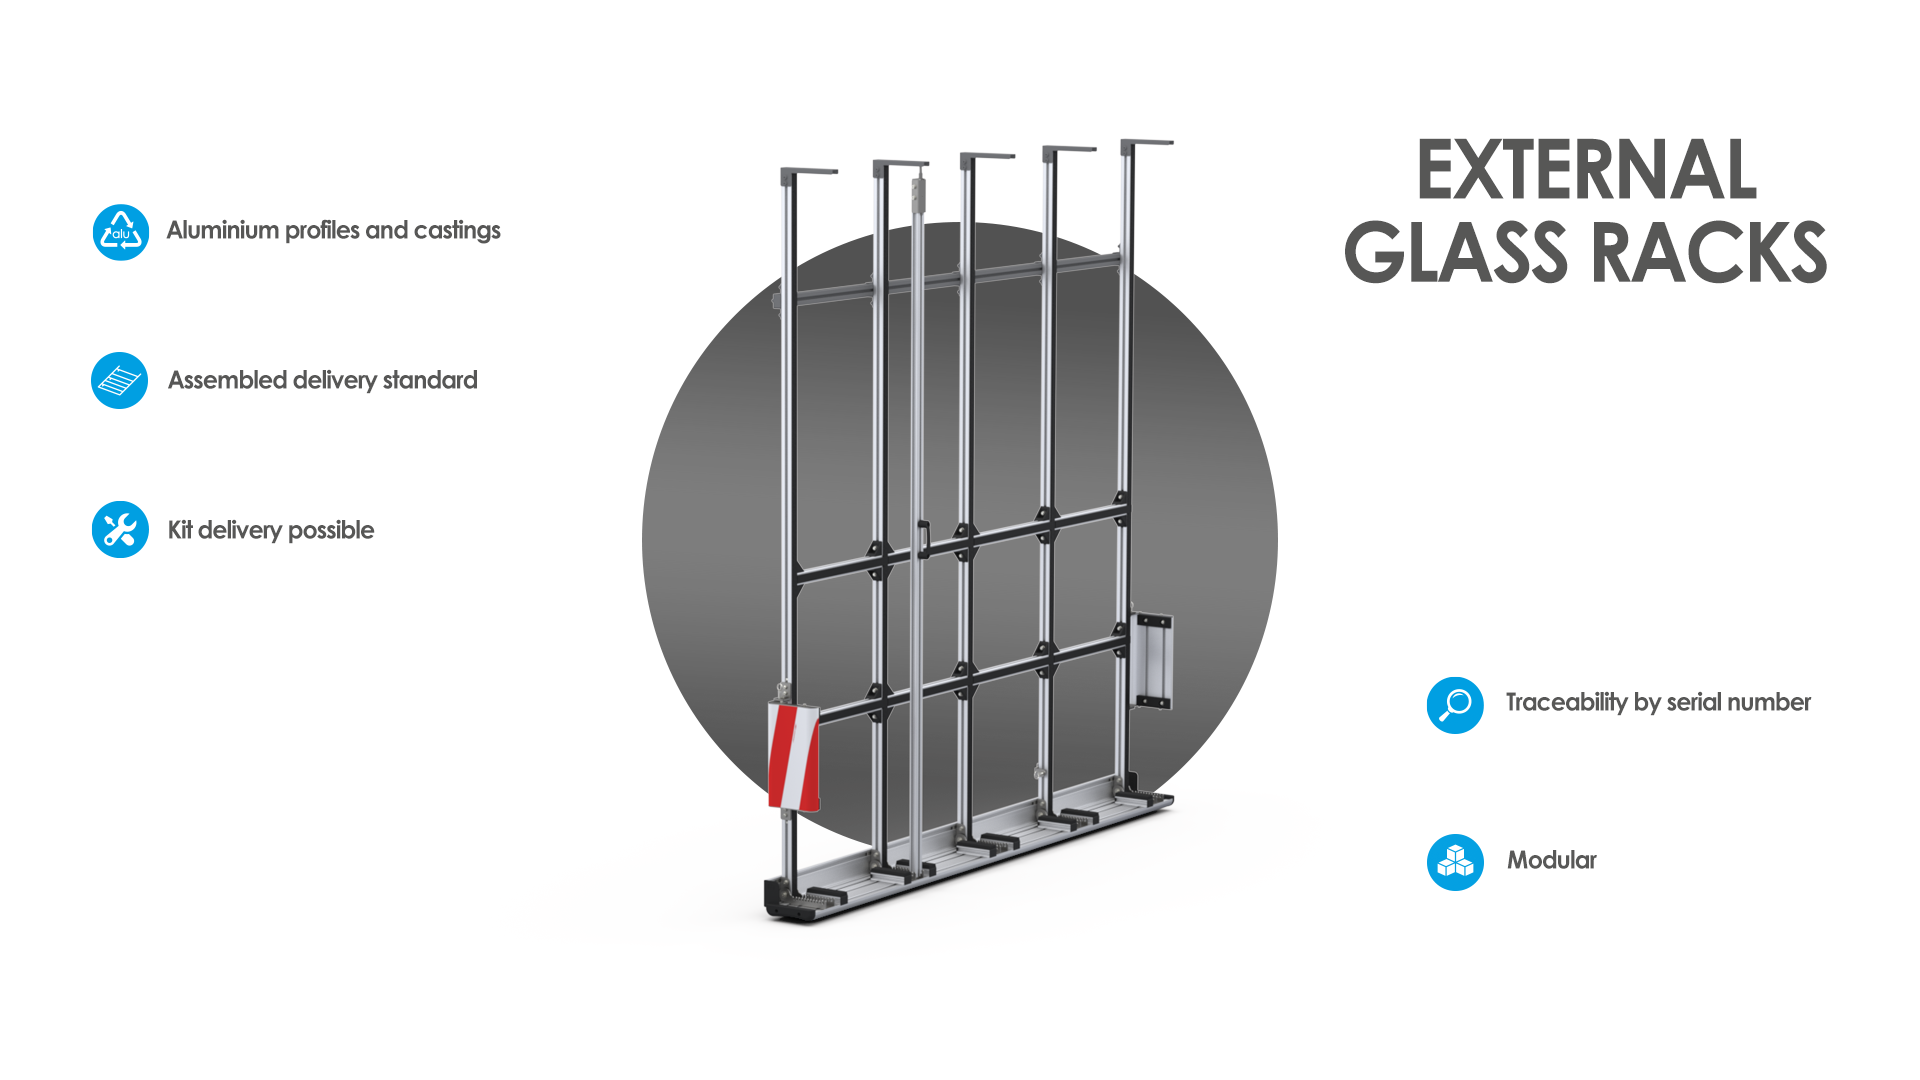 mobietec external glass rack